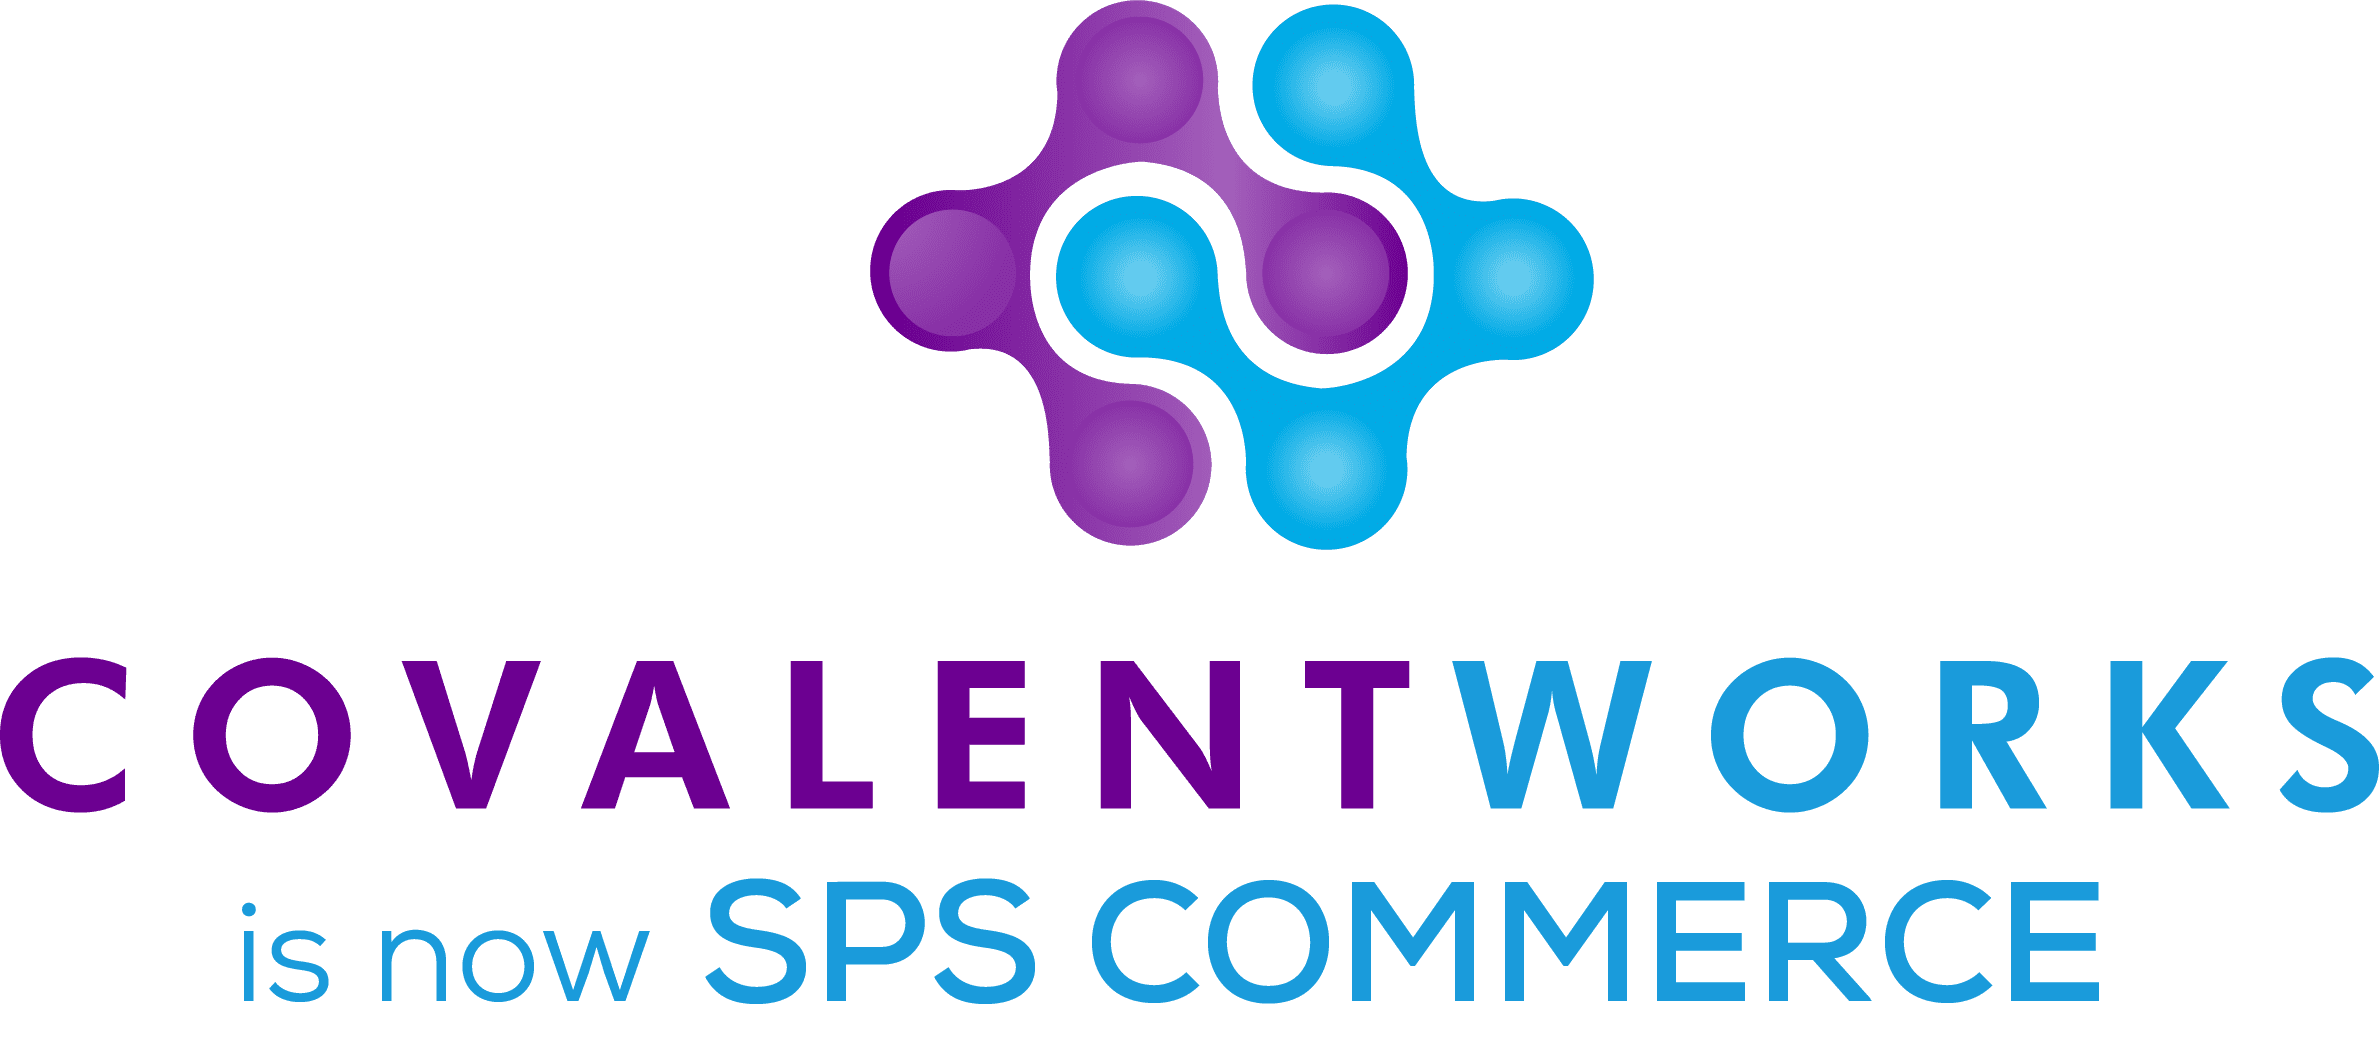 CovalentWorks is now part of SPS Commerce | 2018 Acquisition